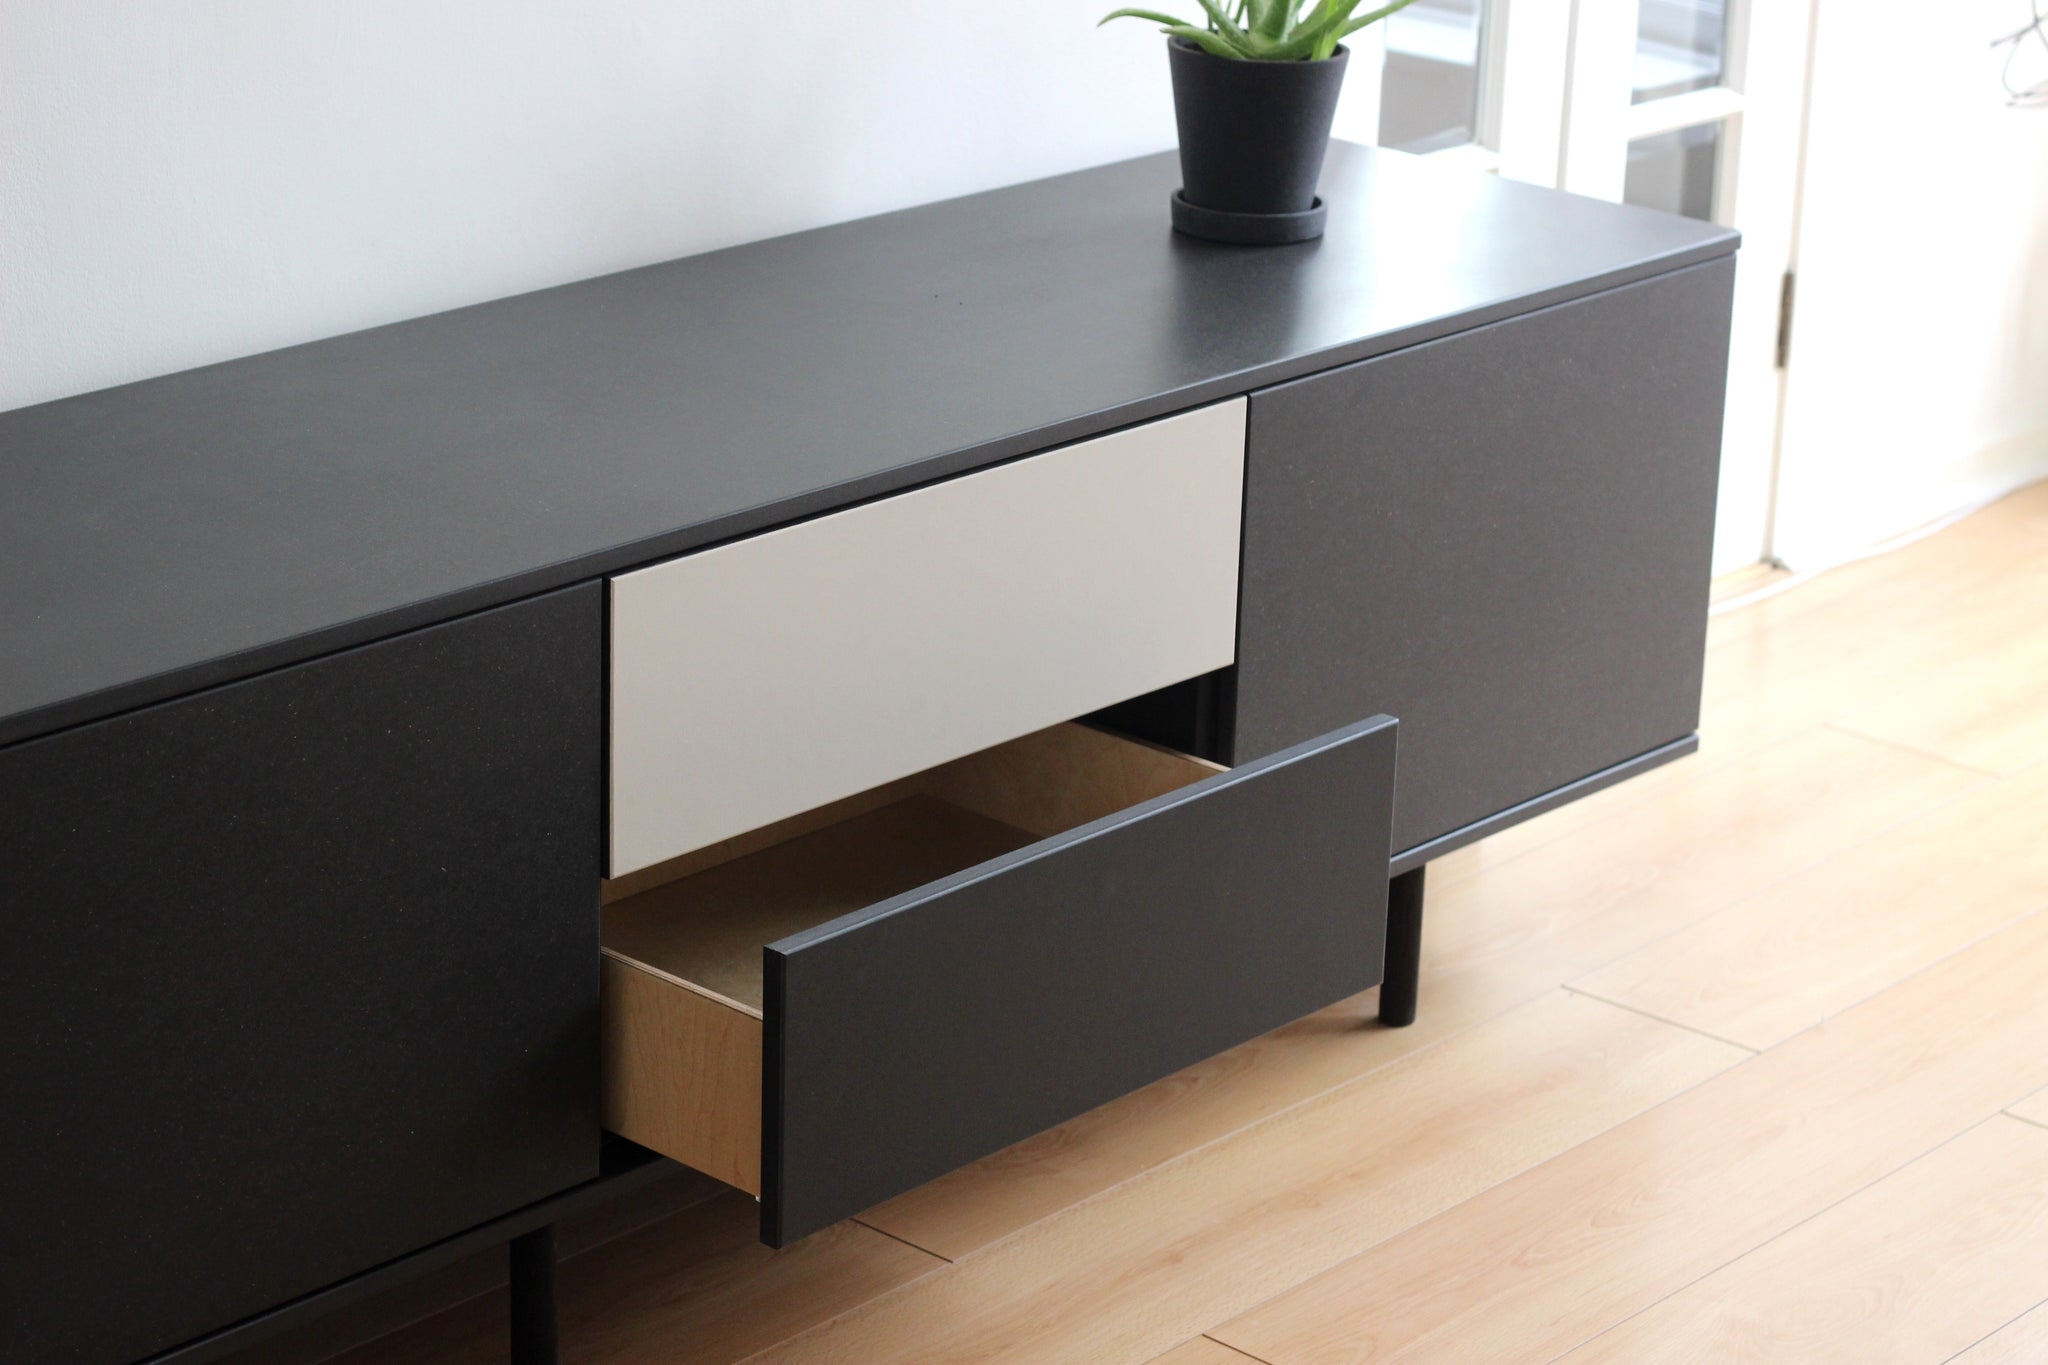 This is a bespoke handmade black Valchromat sideboard made by Jon Grant London in Leyton, East London.